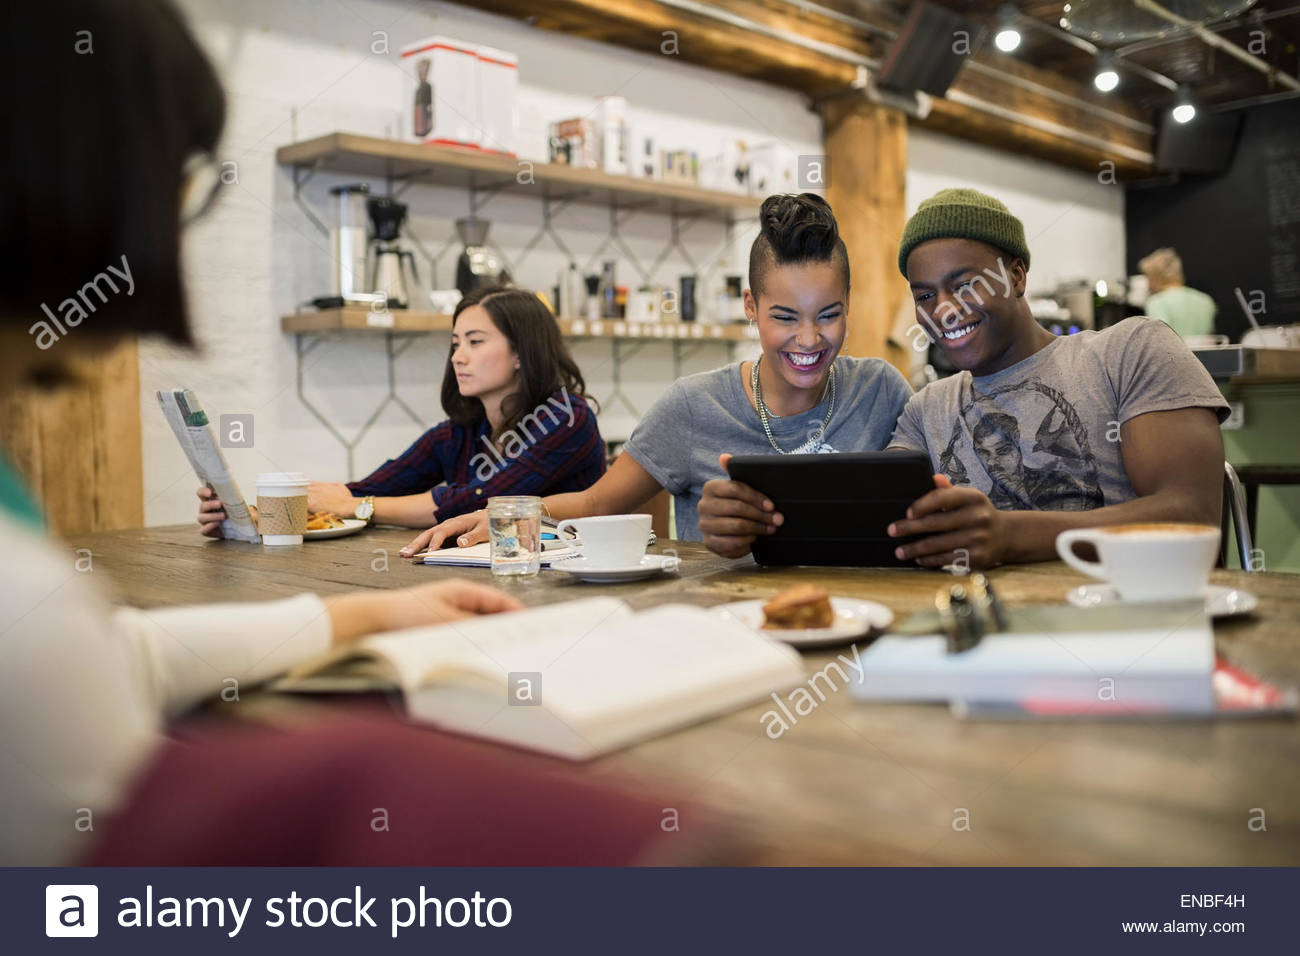 Smiling couple sharing digital tablet in cafe - Stock Image